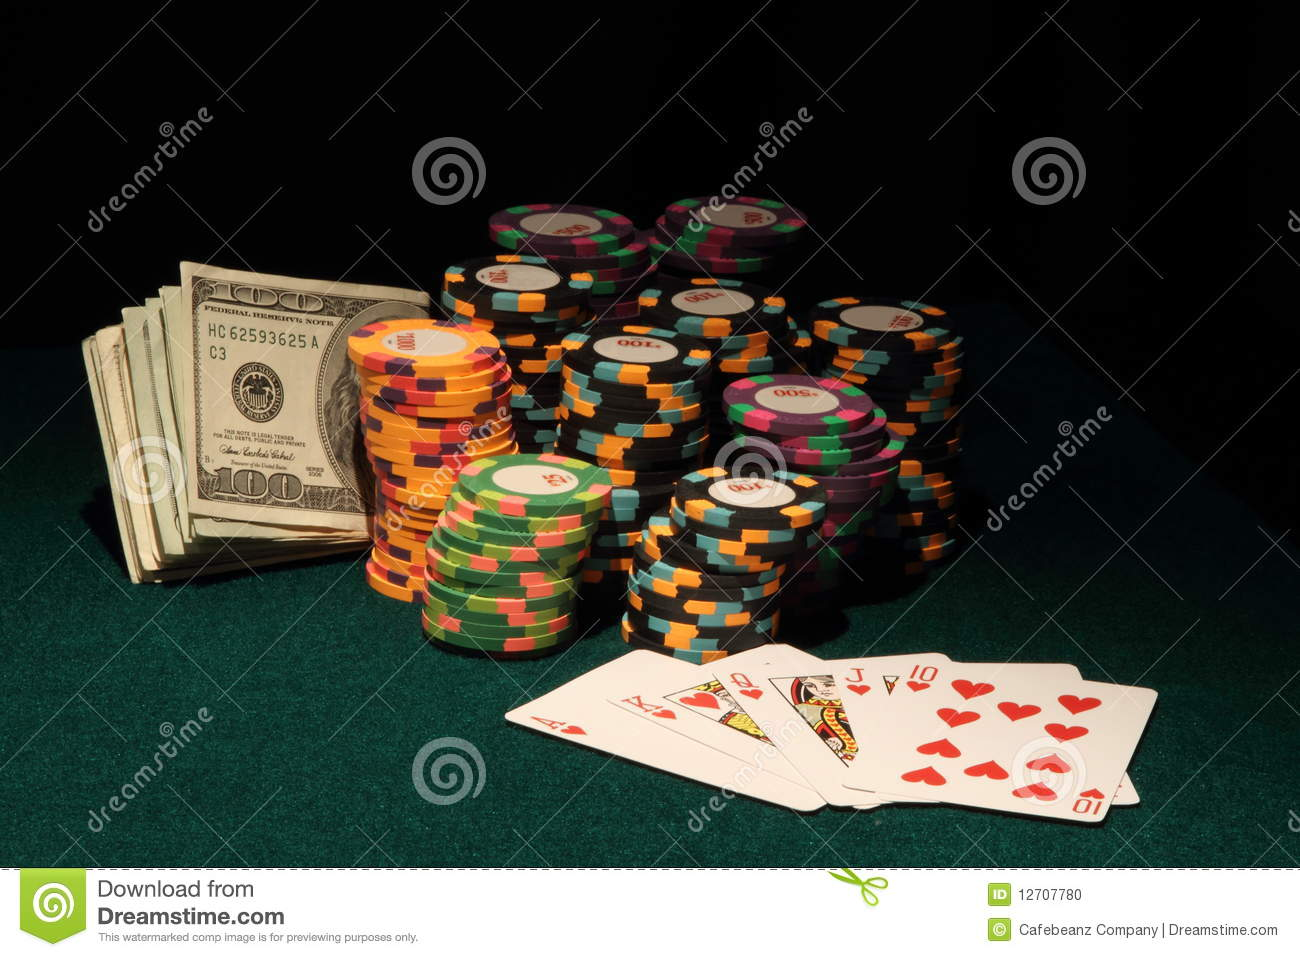 Poker online dinero real opiniones tragaperra Magic Portals 80482